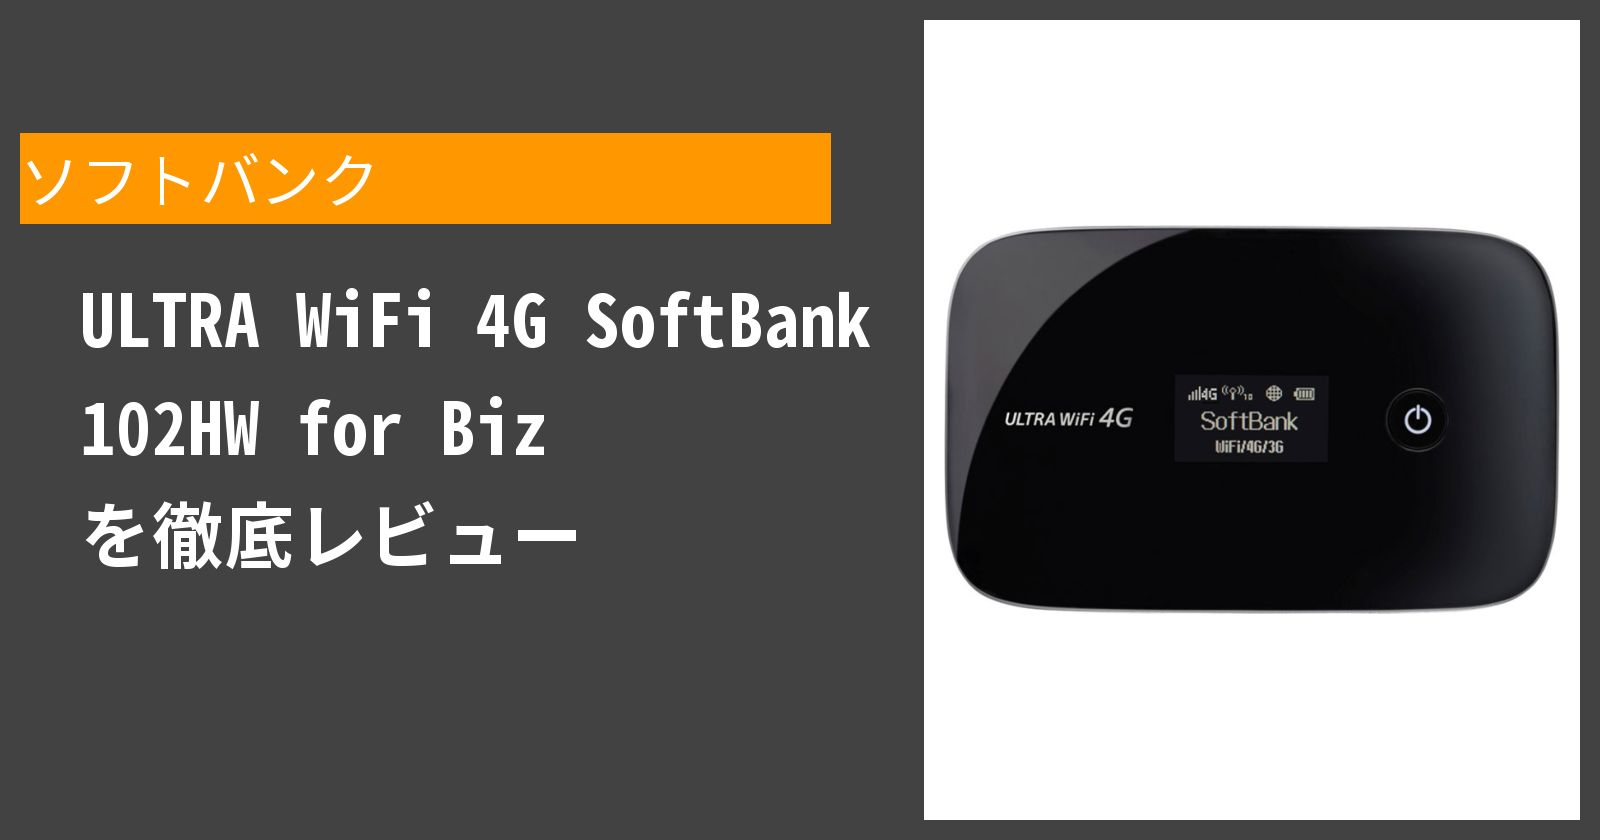 ULTRA WiFi 4G SoftBank 102HW for Bizを徹底評価